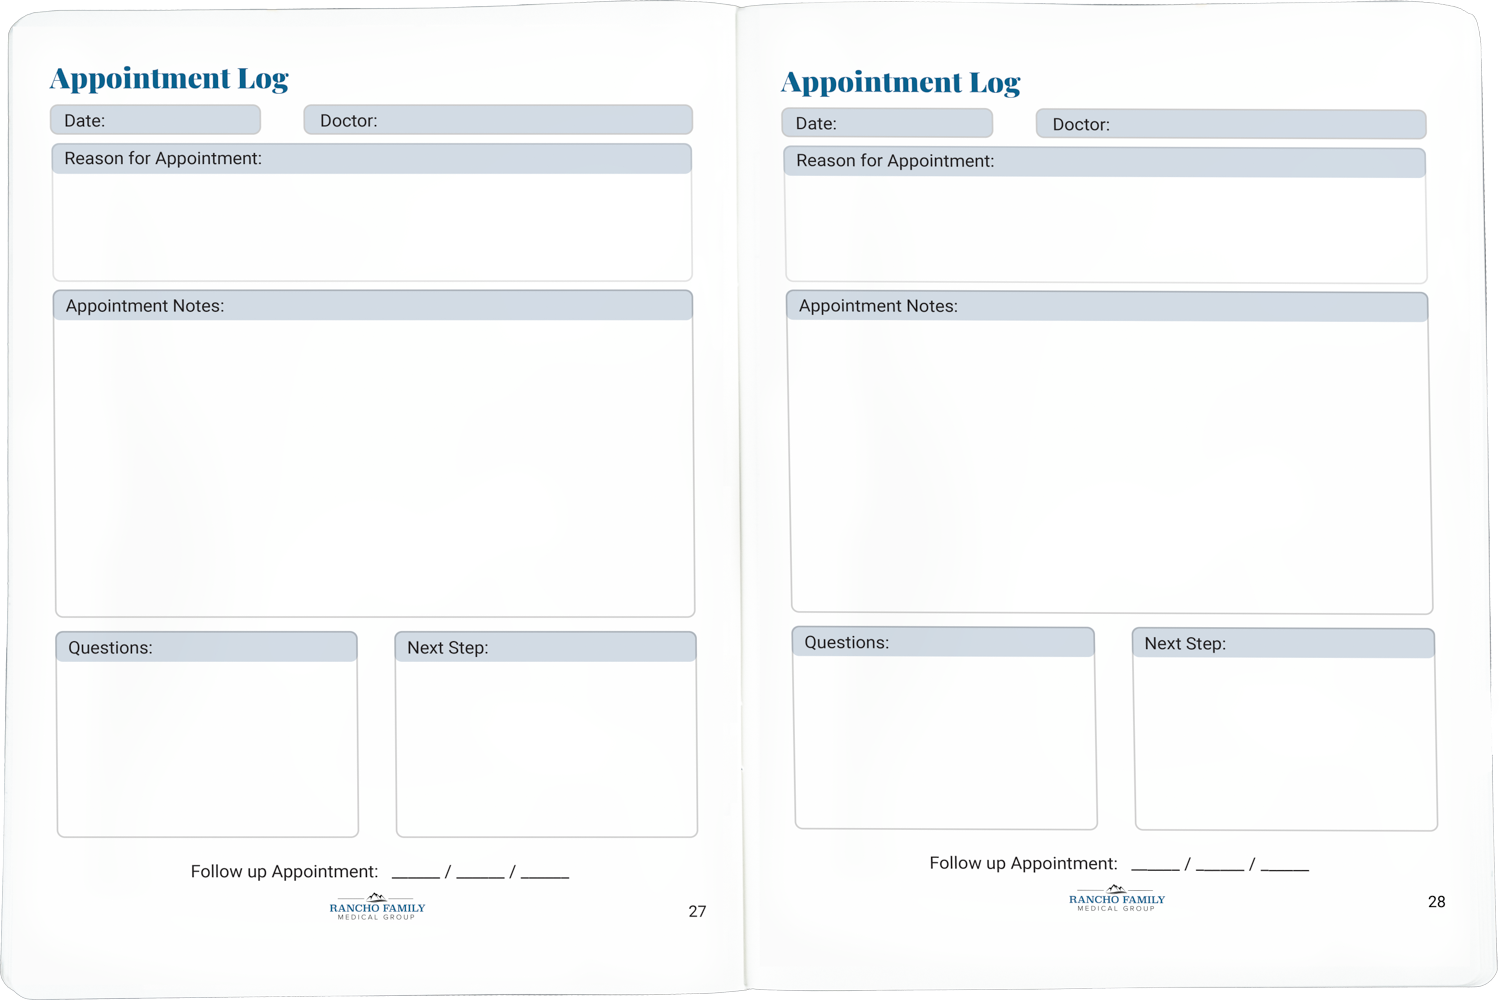 Appointment Logs